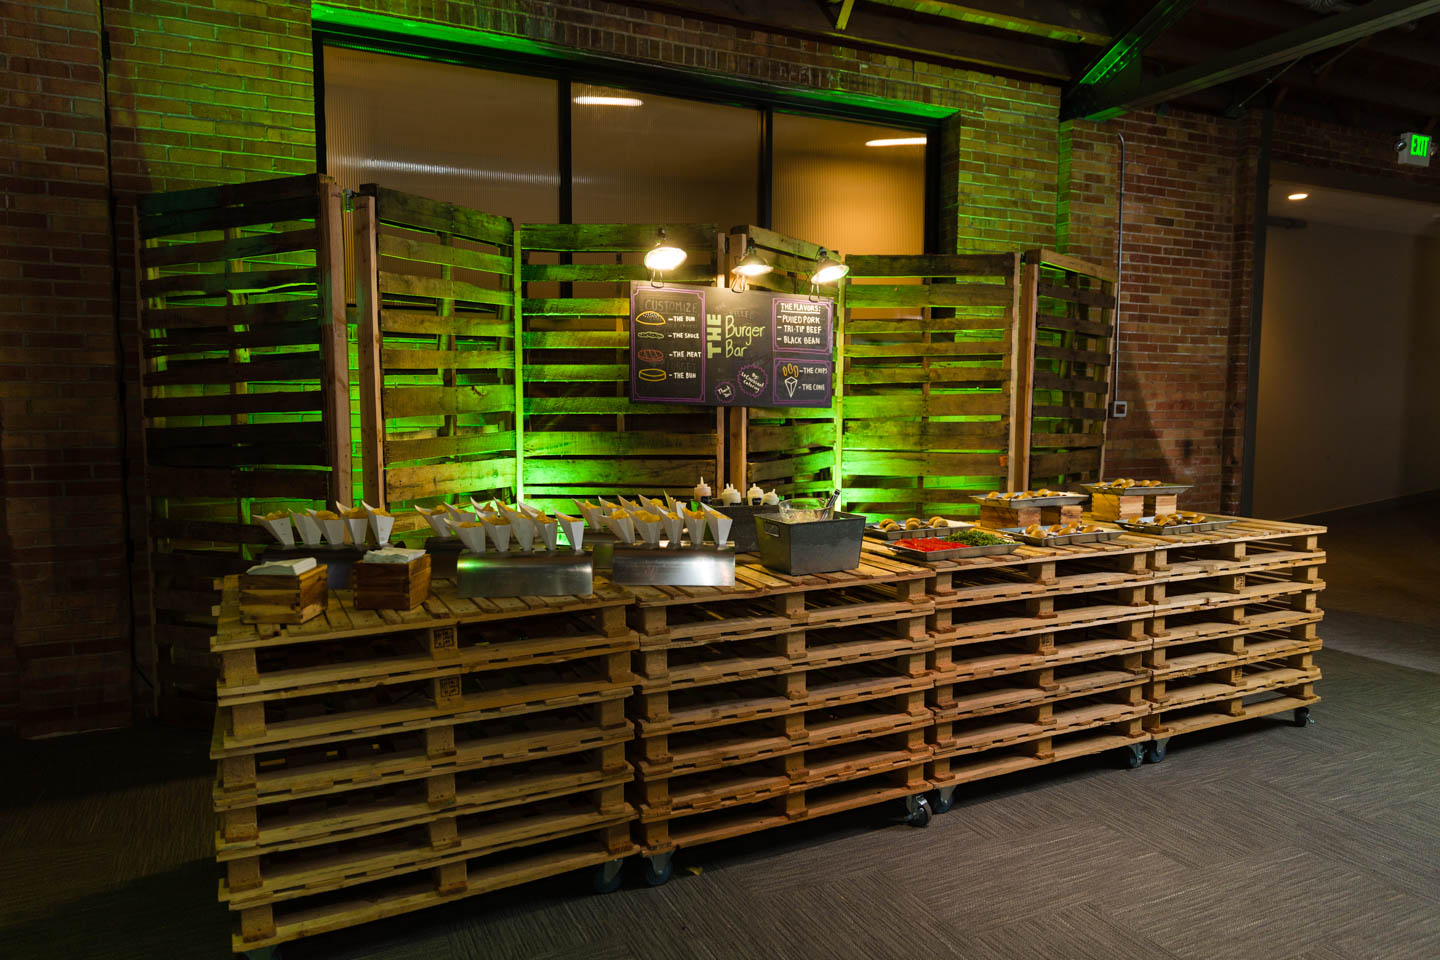 LUX Food stations